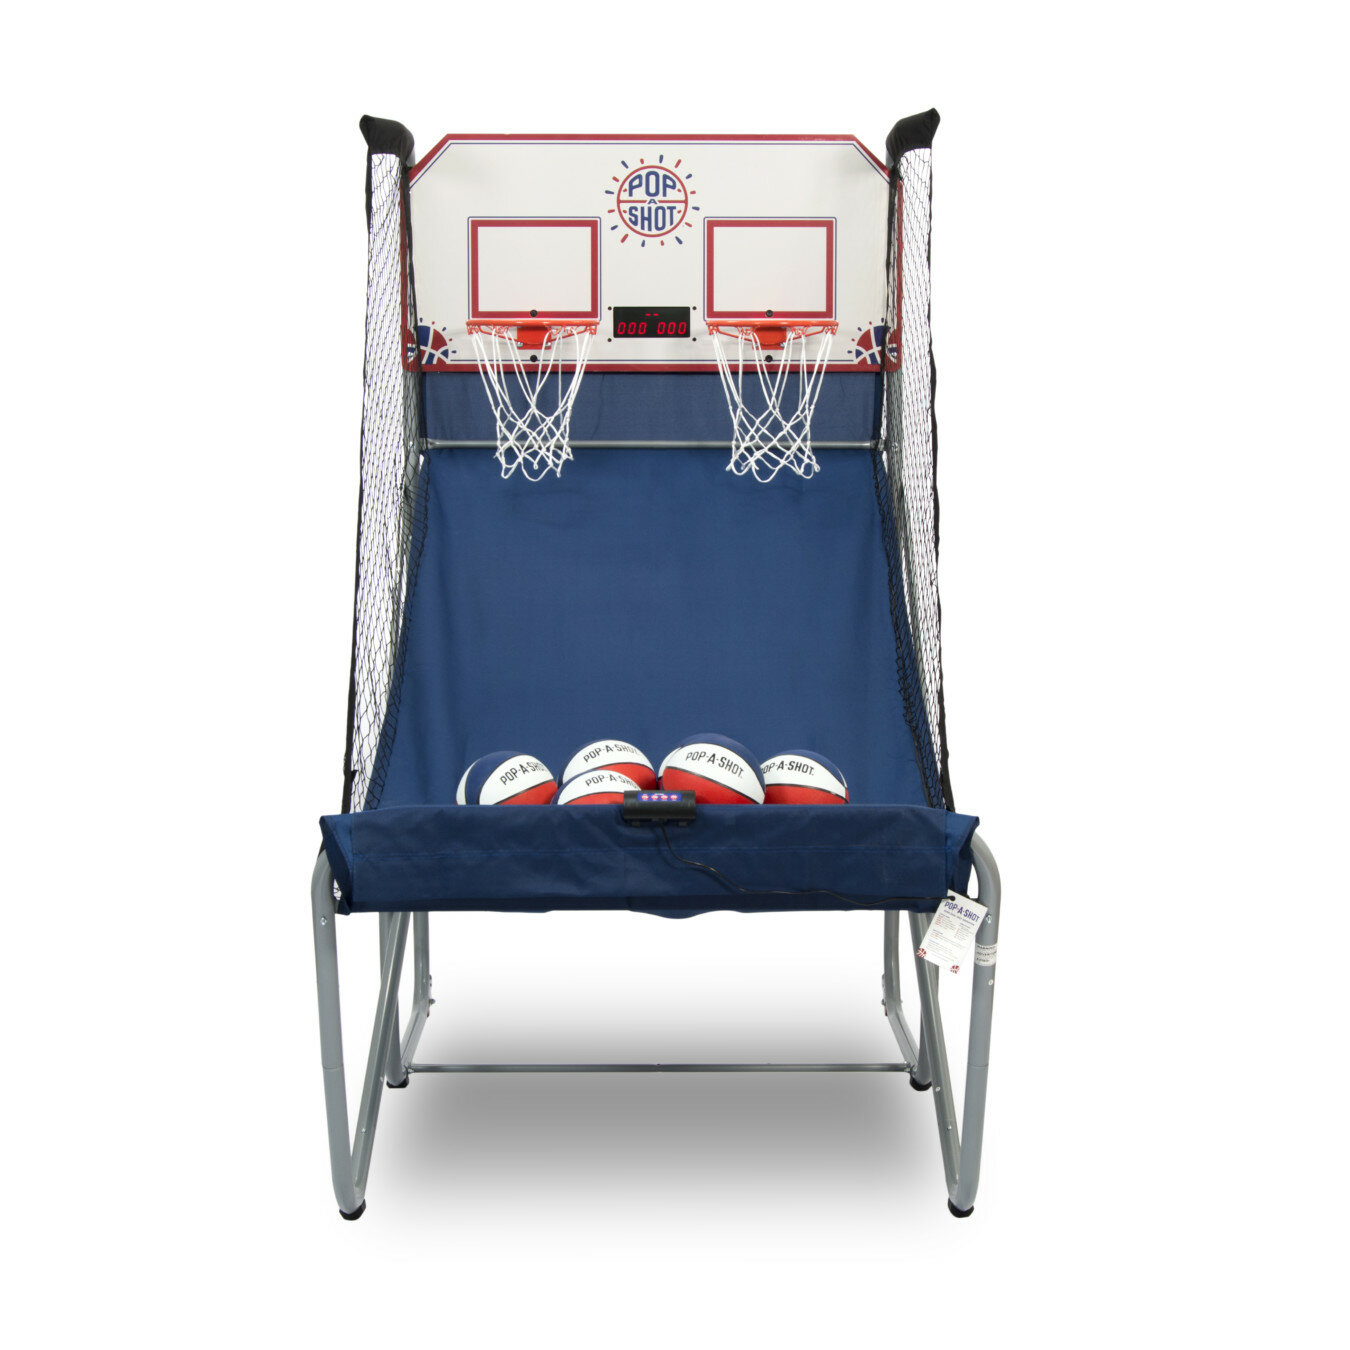 Official Pop-A-Shot Home Dual Shot Basketball Arcade Game